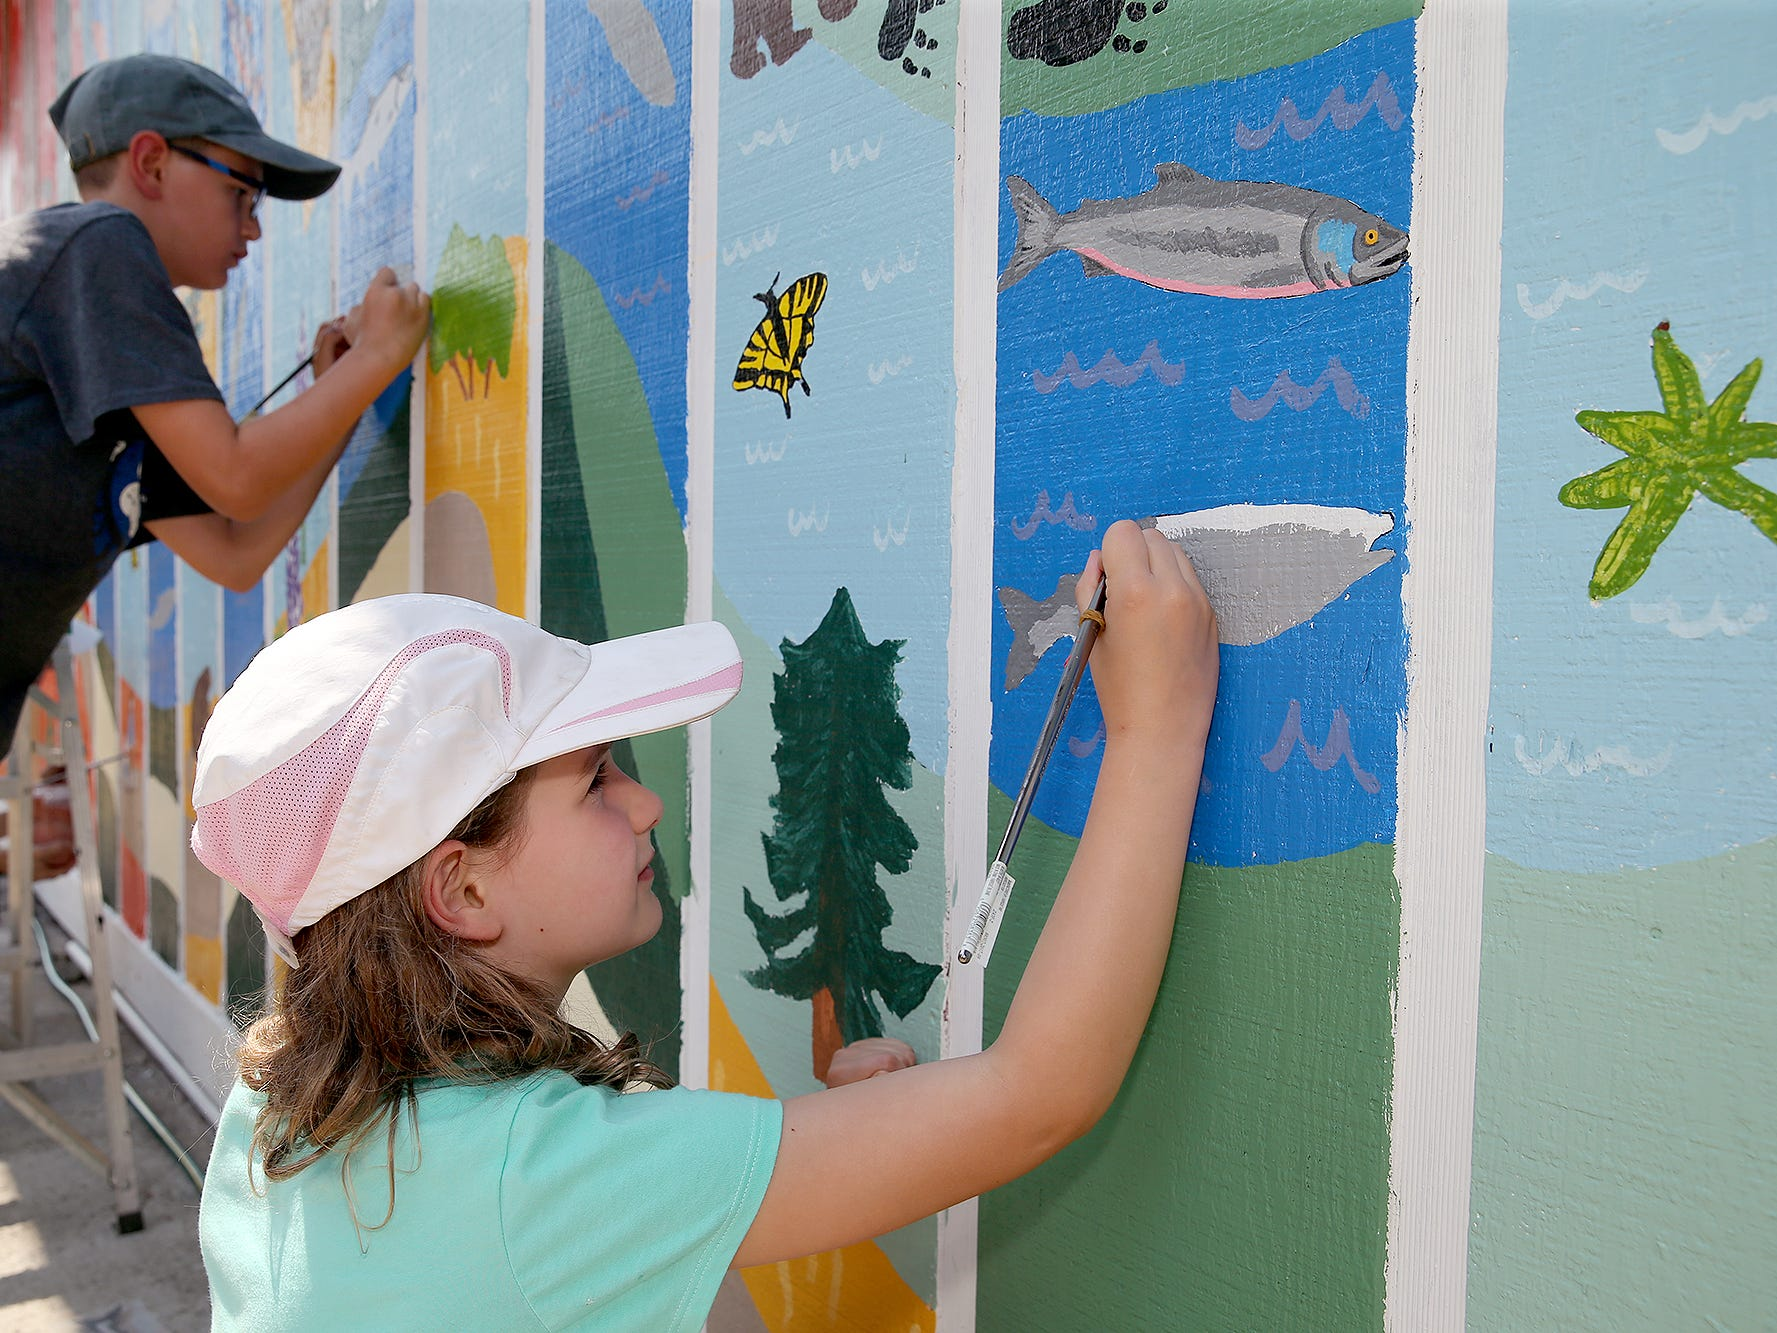 Lila O'Neil-Heine, 9, of Poulsbo volunteers to paint a salmon on the nature mural on Wednesday August 8, 2018.